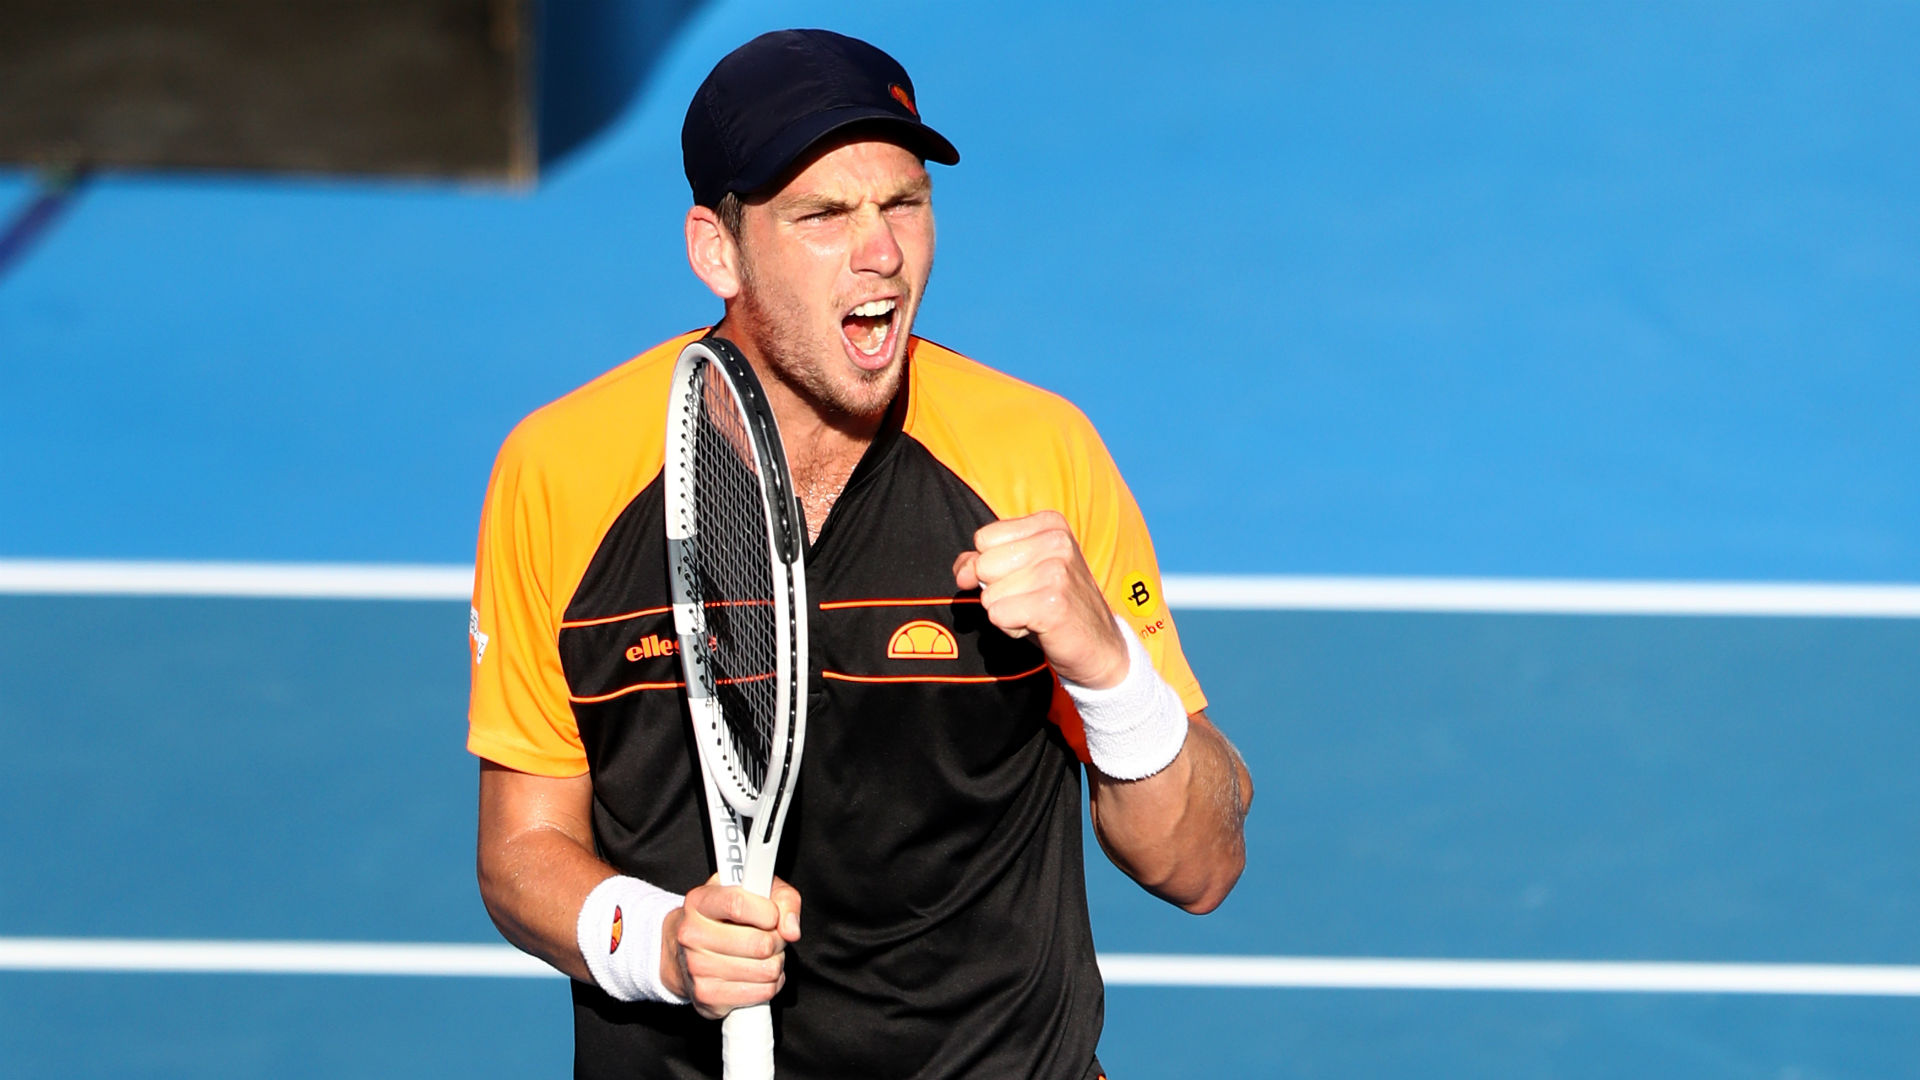 There will be a first-time ATP Tour champion at the Auckland Open, while Andreas Seppi is through to the Sydney International final.